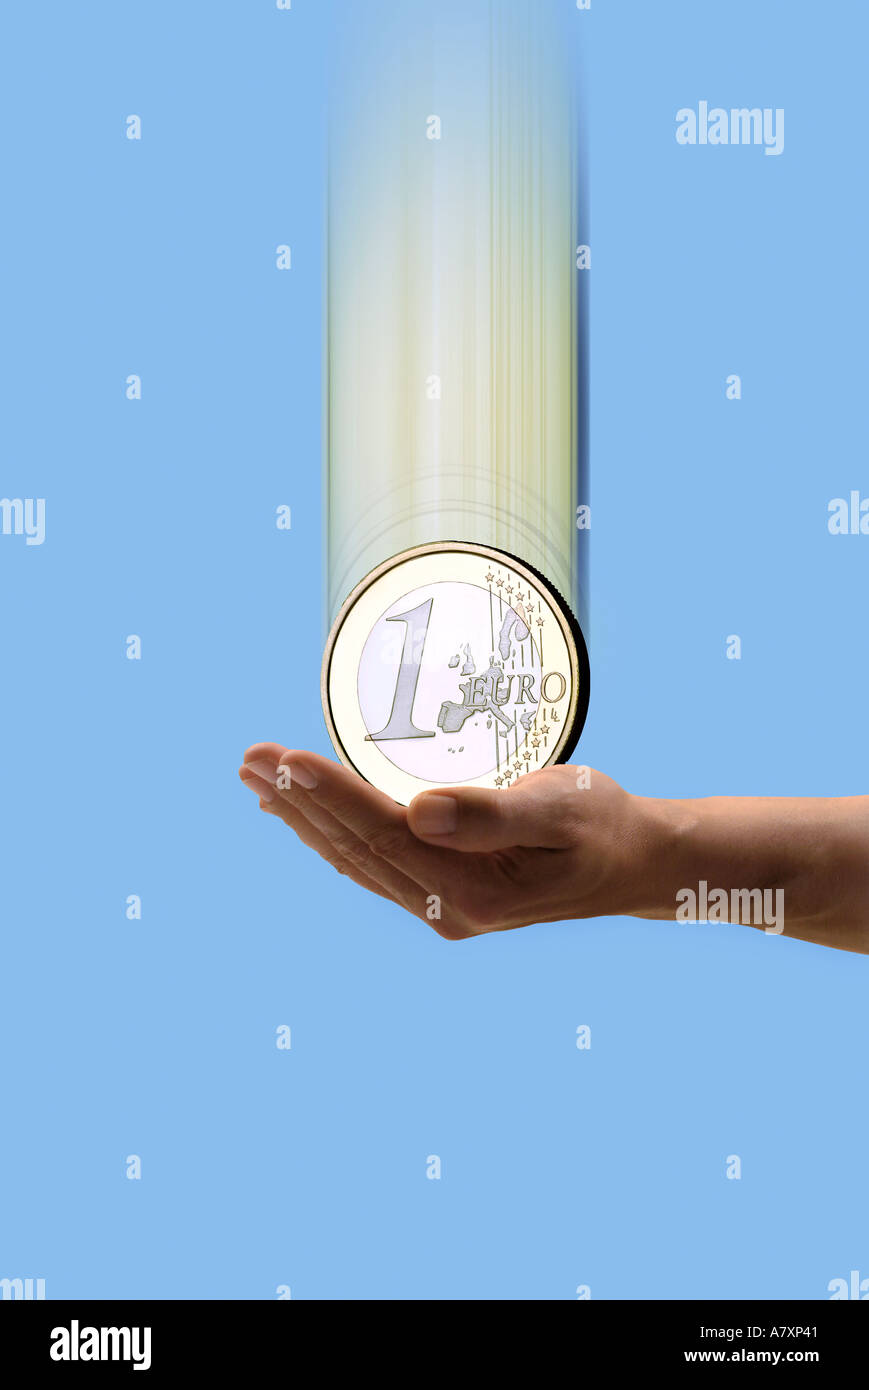 1 Euro falling in a hand 1 Euromünze fällt in Hand - Stock Image